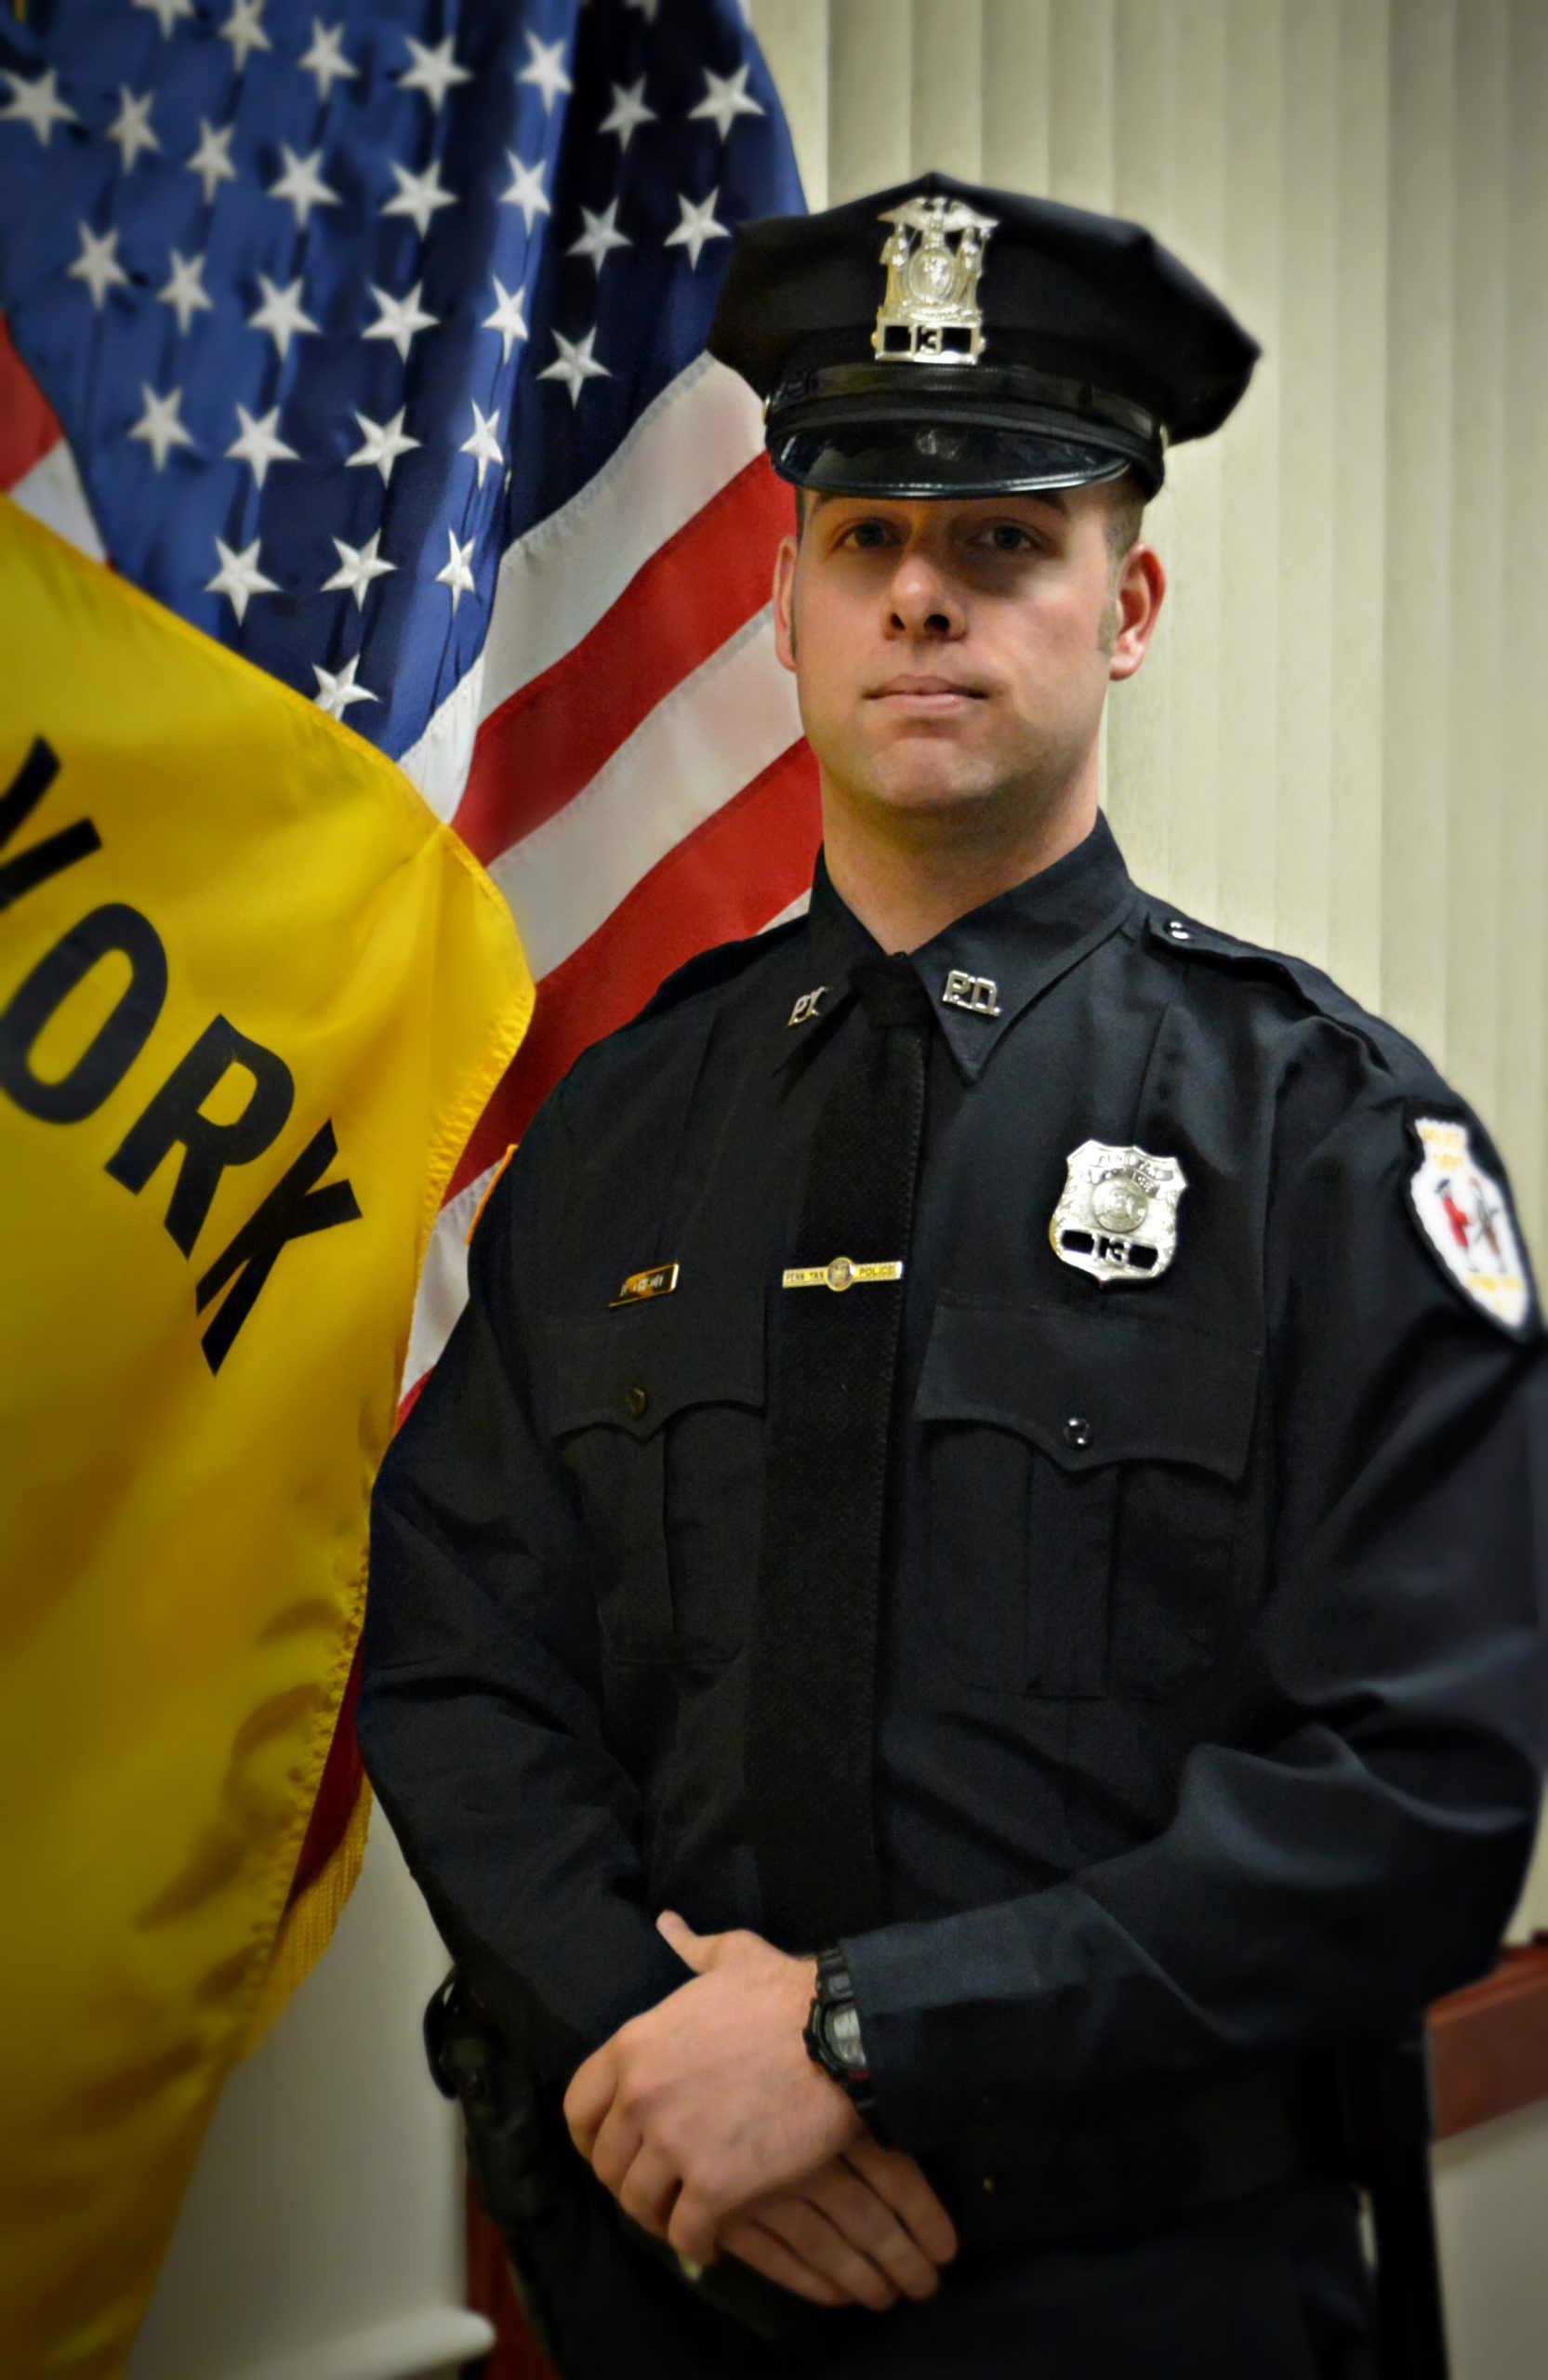 Penn Yan Police Officer Saves Overdose Victim's Life